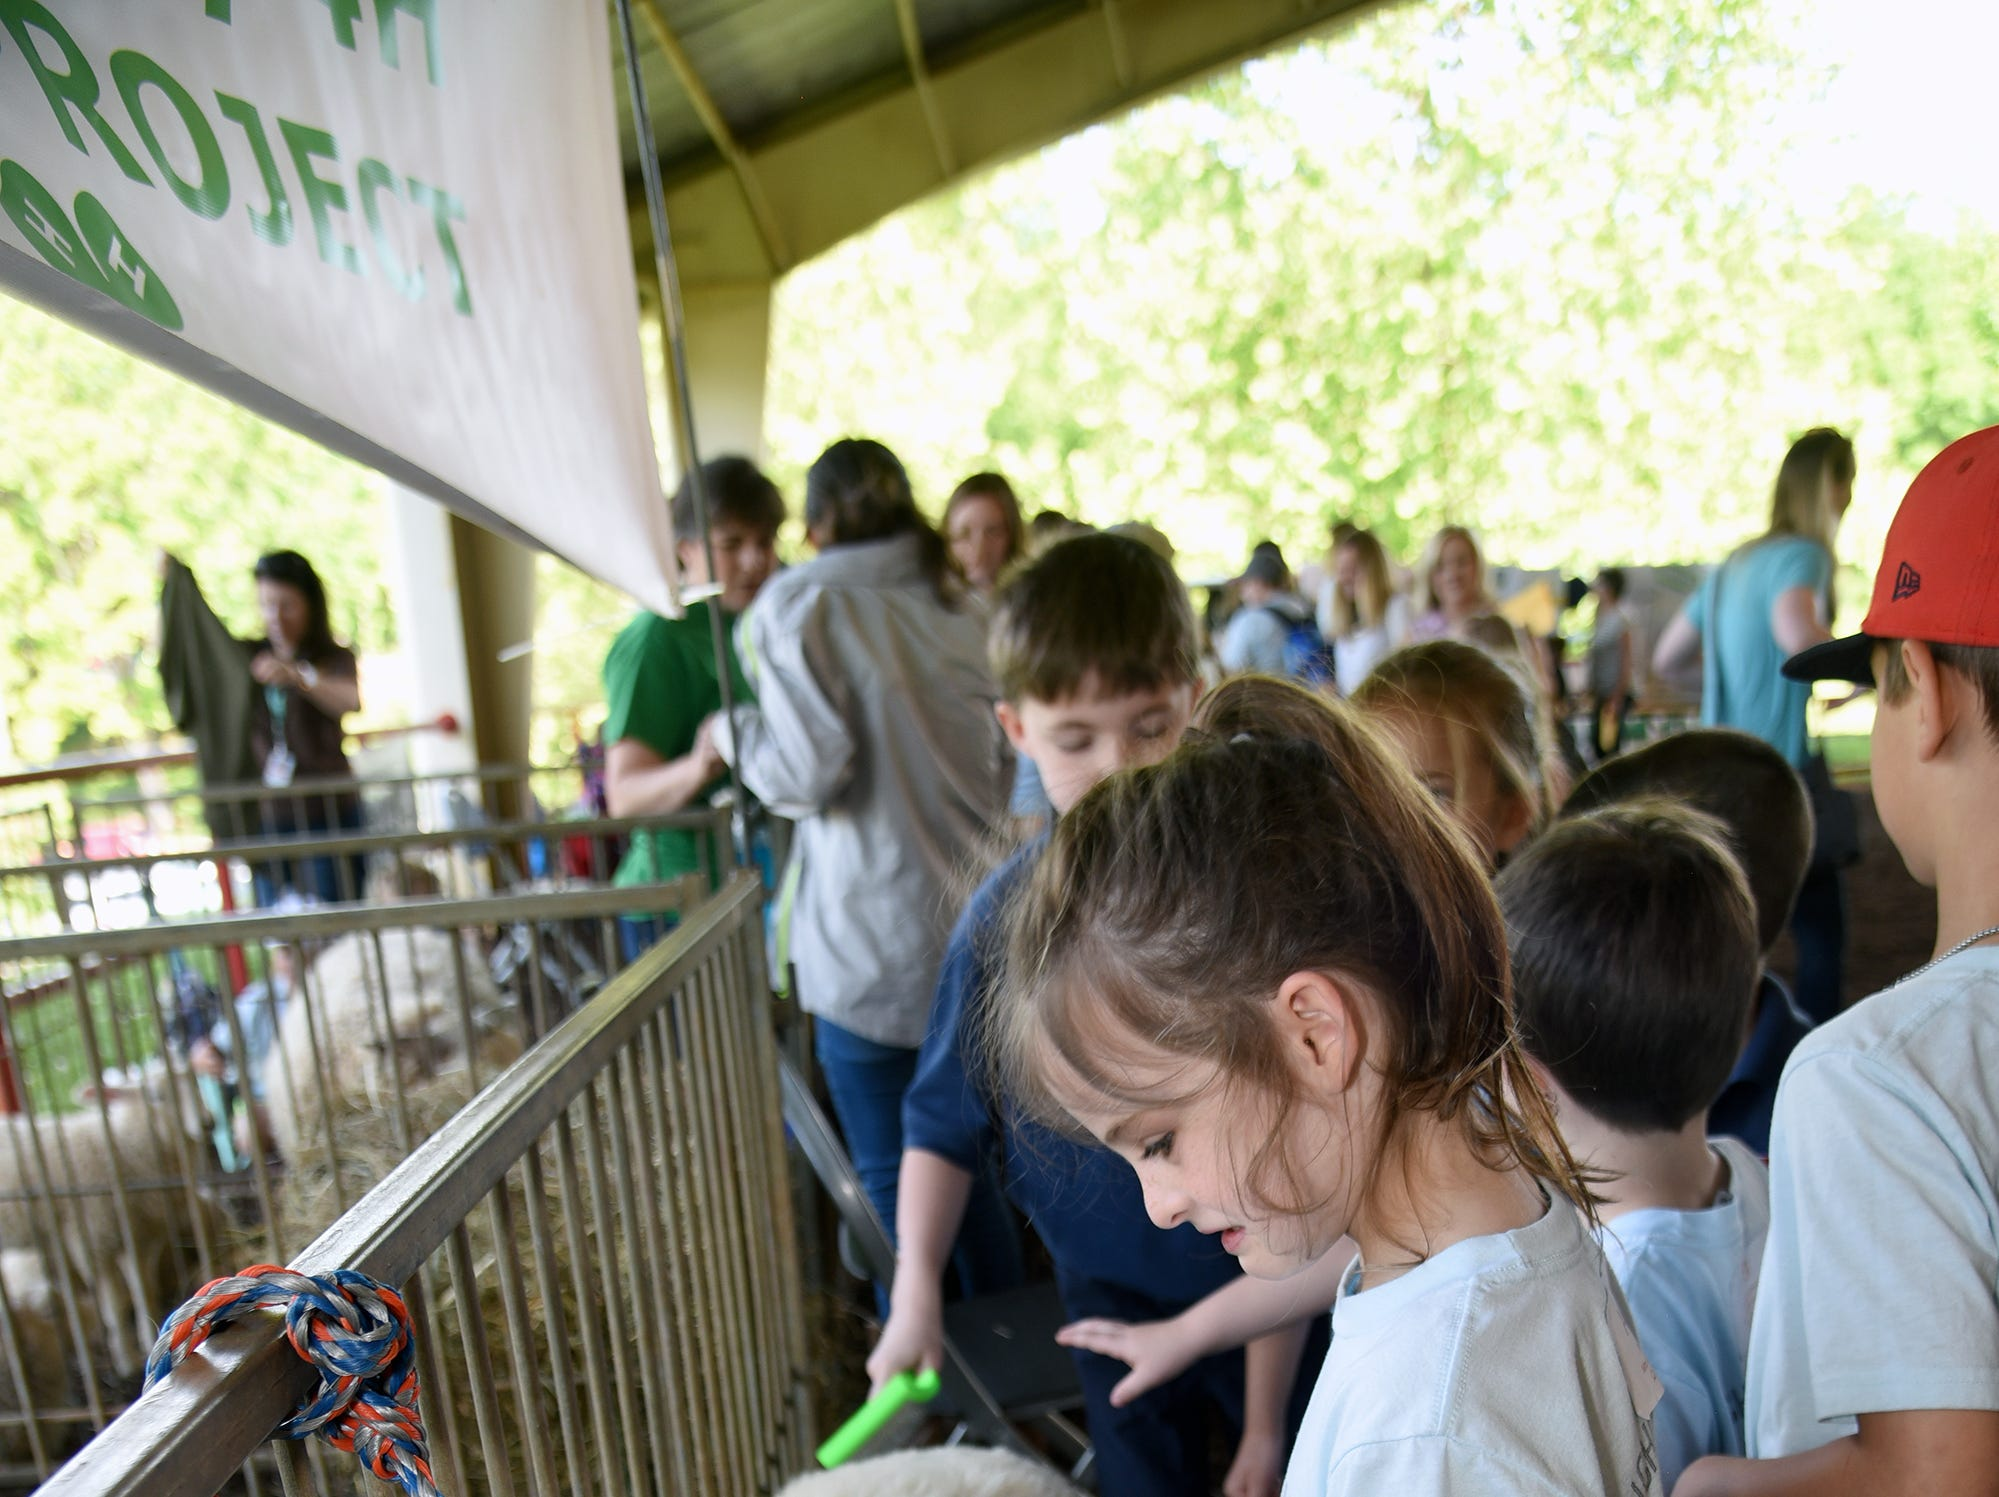 A Sequoyah Elementary student combs a Katahdin hair sheep. Over 600 Knox County School children attended the annual Knox County Farm Bureau Ag in the Classroom Farm Day at Chilhowee Park Tuesday, May 7, 2019.